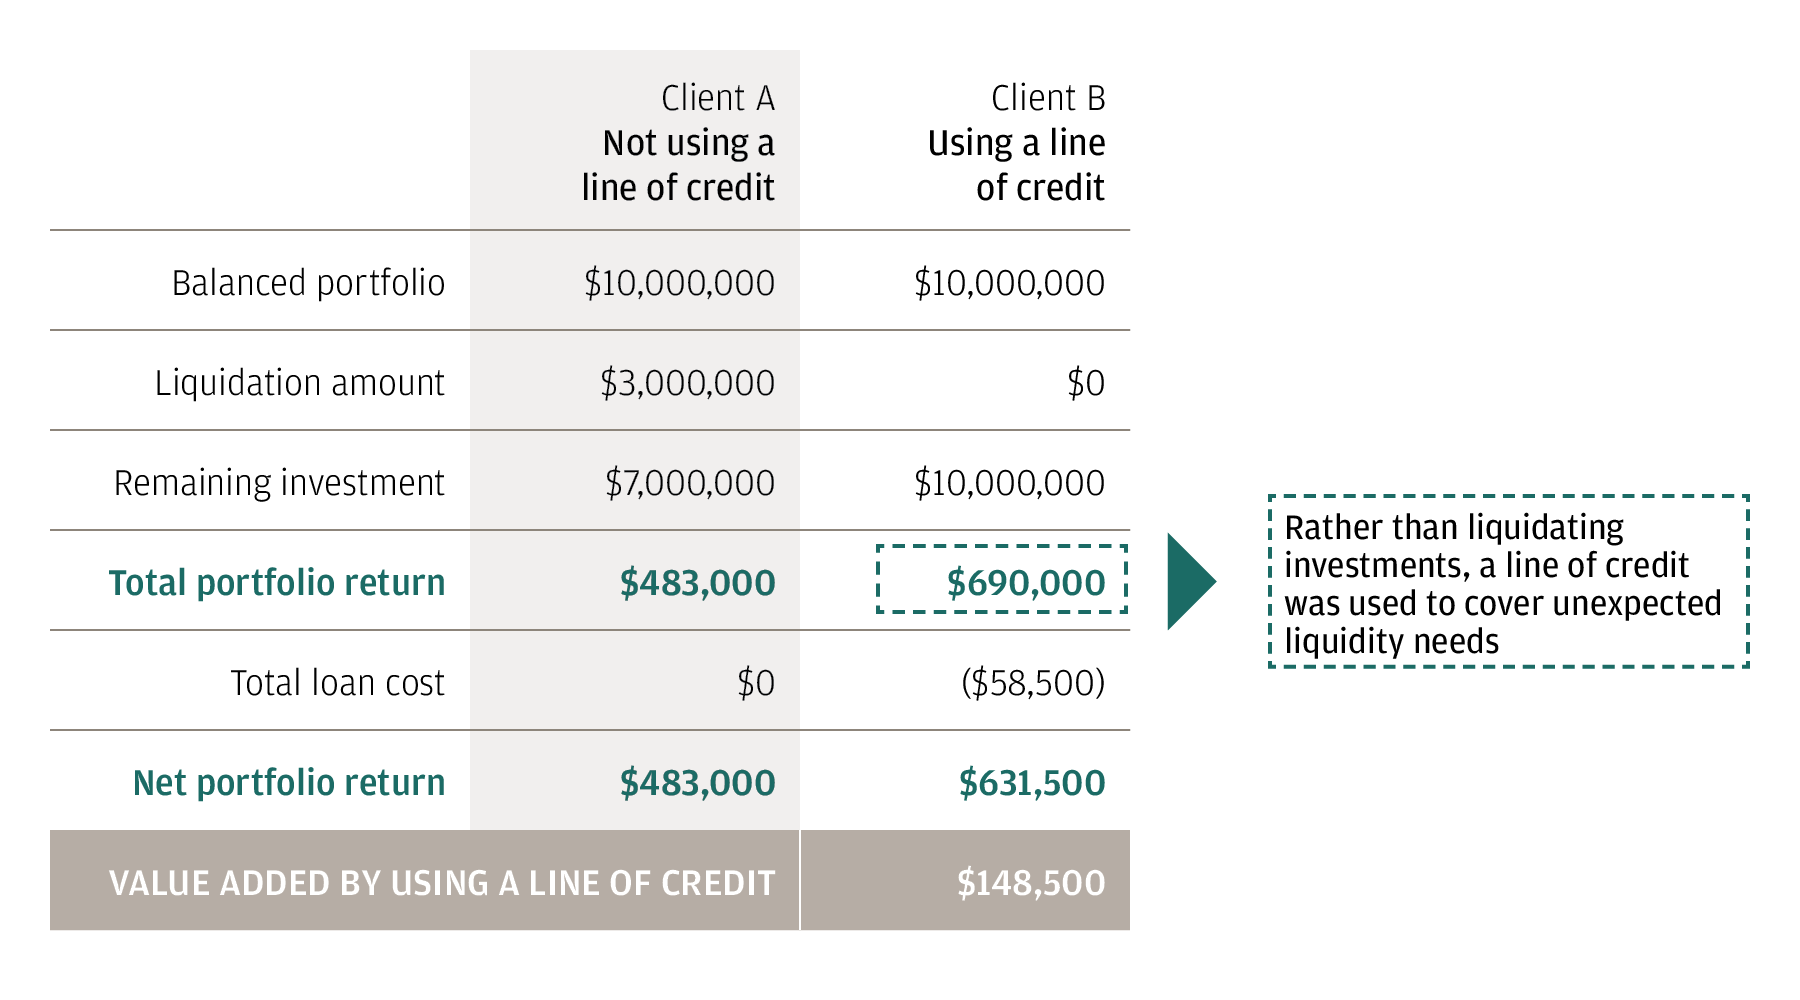 This table compares the results of meeting a liquidity need through the sale of portfolio securities versus meeting that same need by accessing a line of credit.